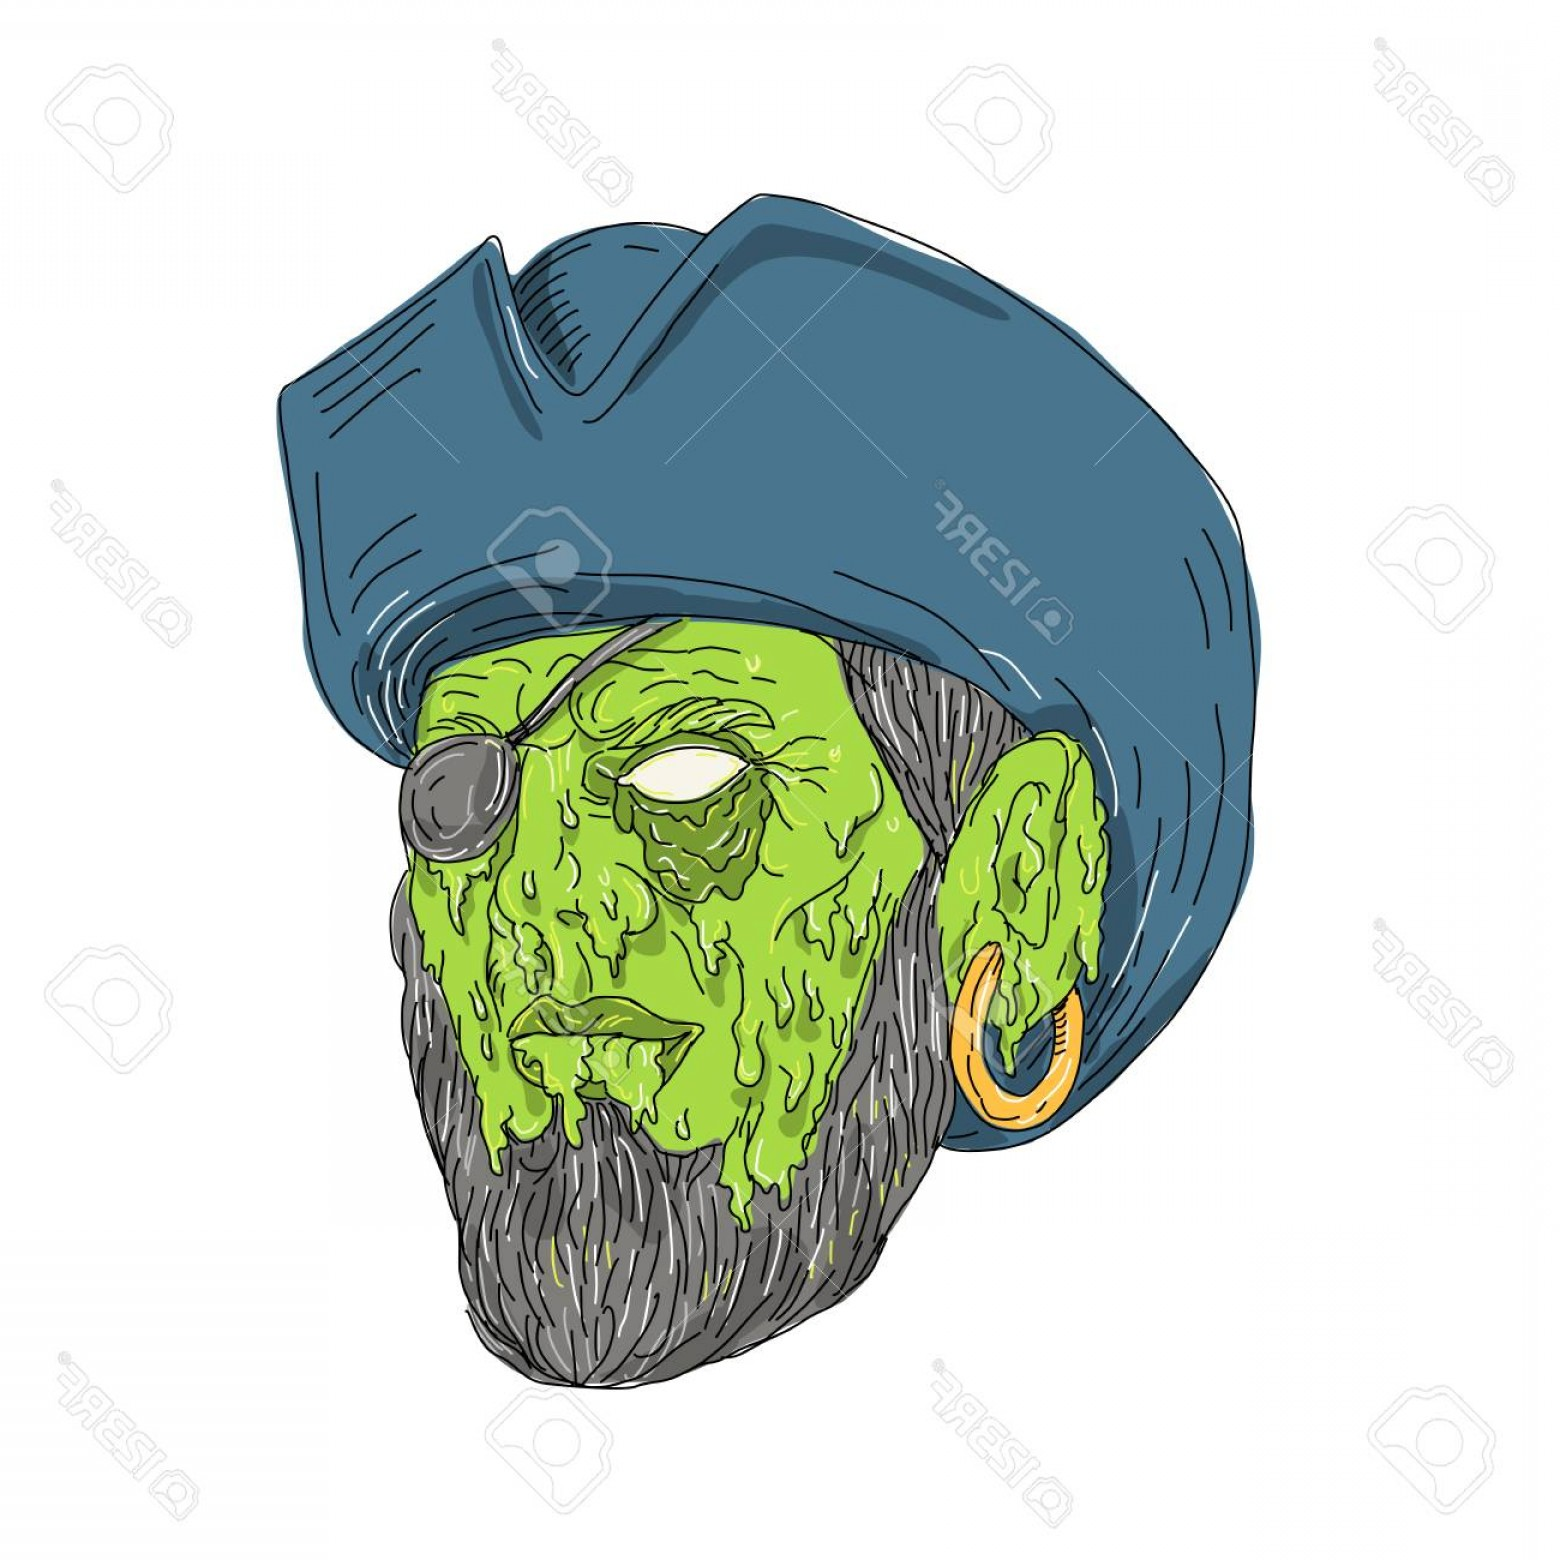 Grime Vector Pack: Photostock Vector Grime Art Style Illustration Of A Buccaneer Pirate Privateer Wearing A Tricorne Hat And Eye Patch On